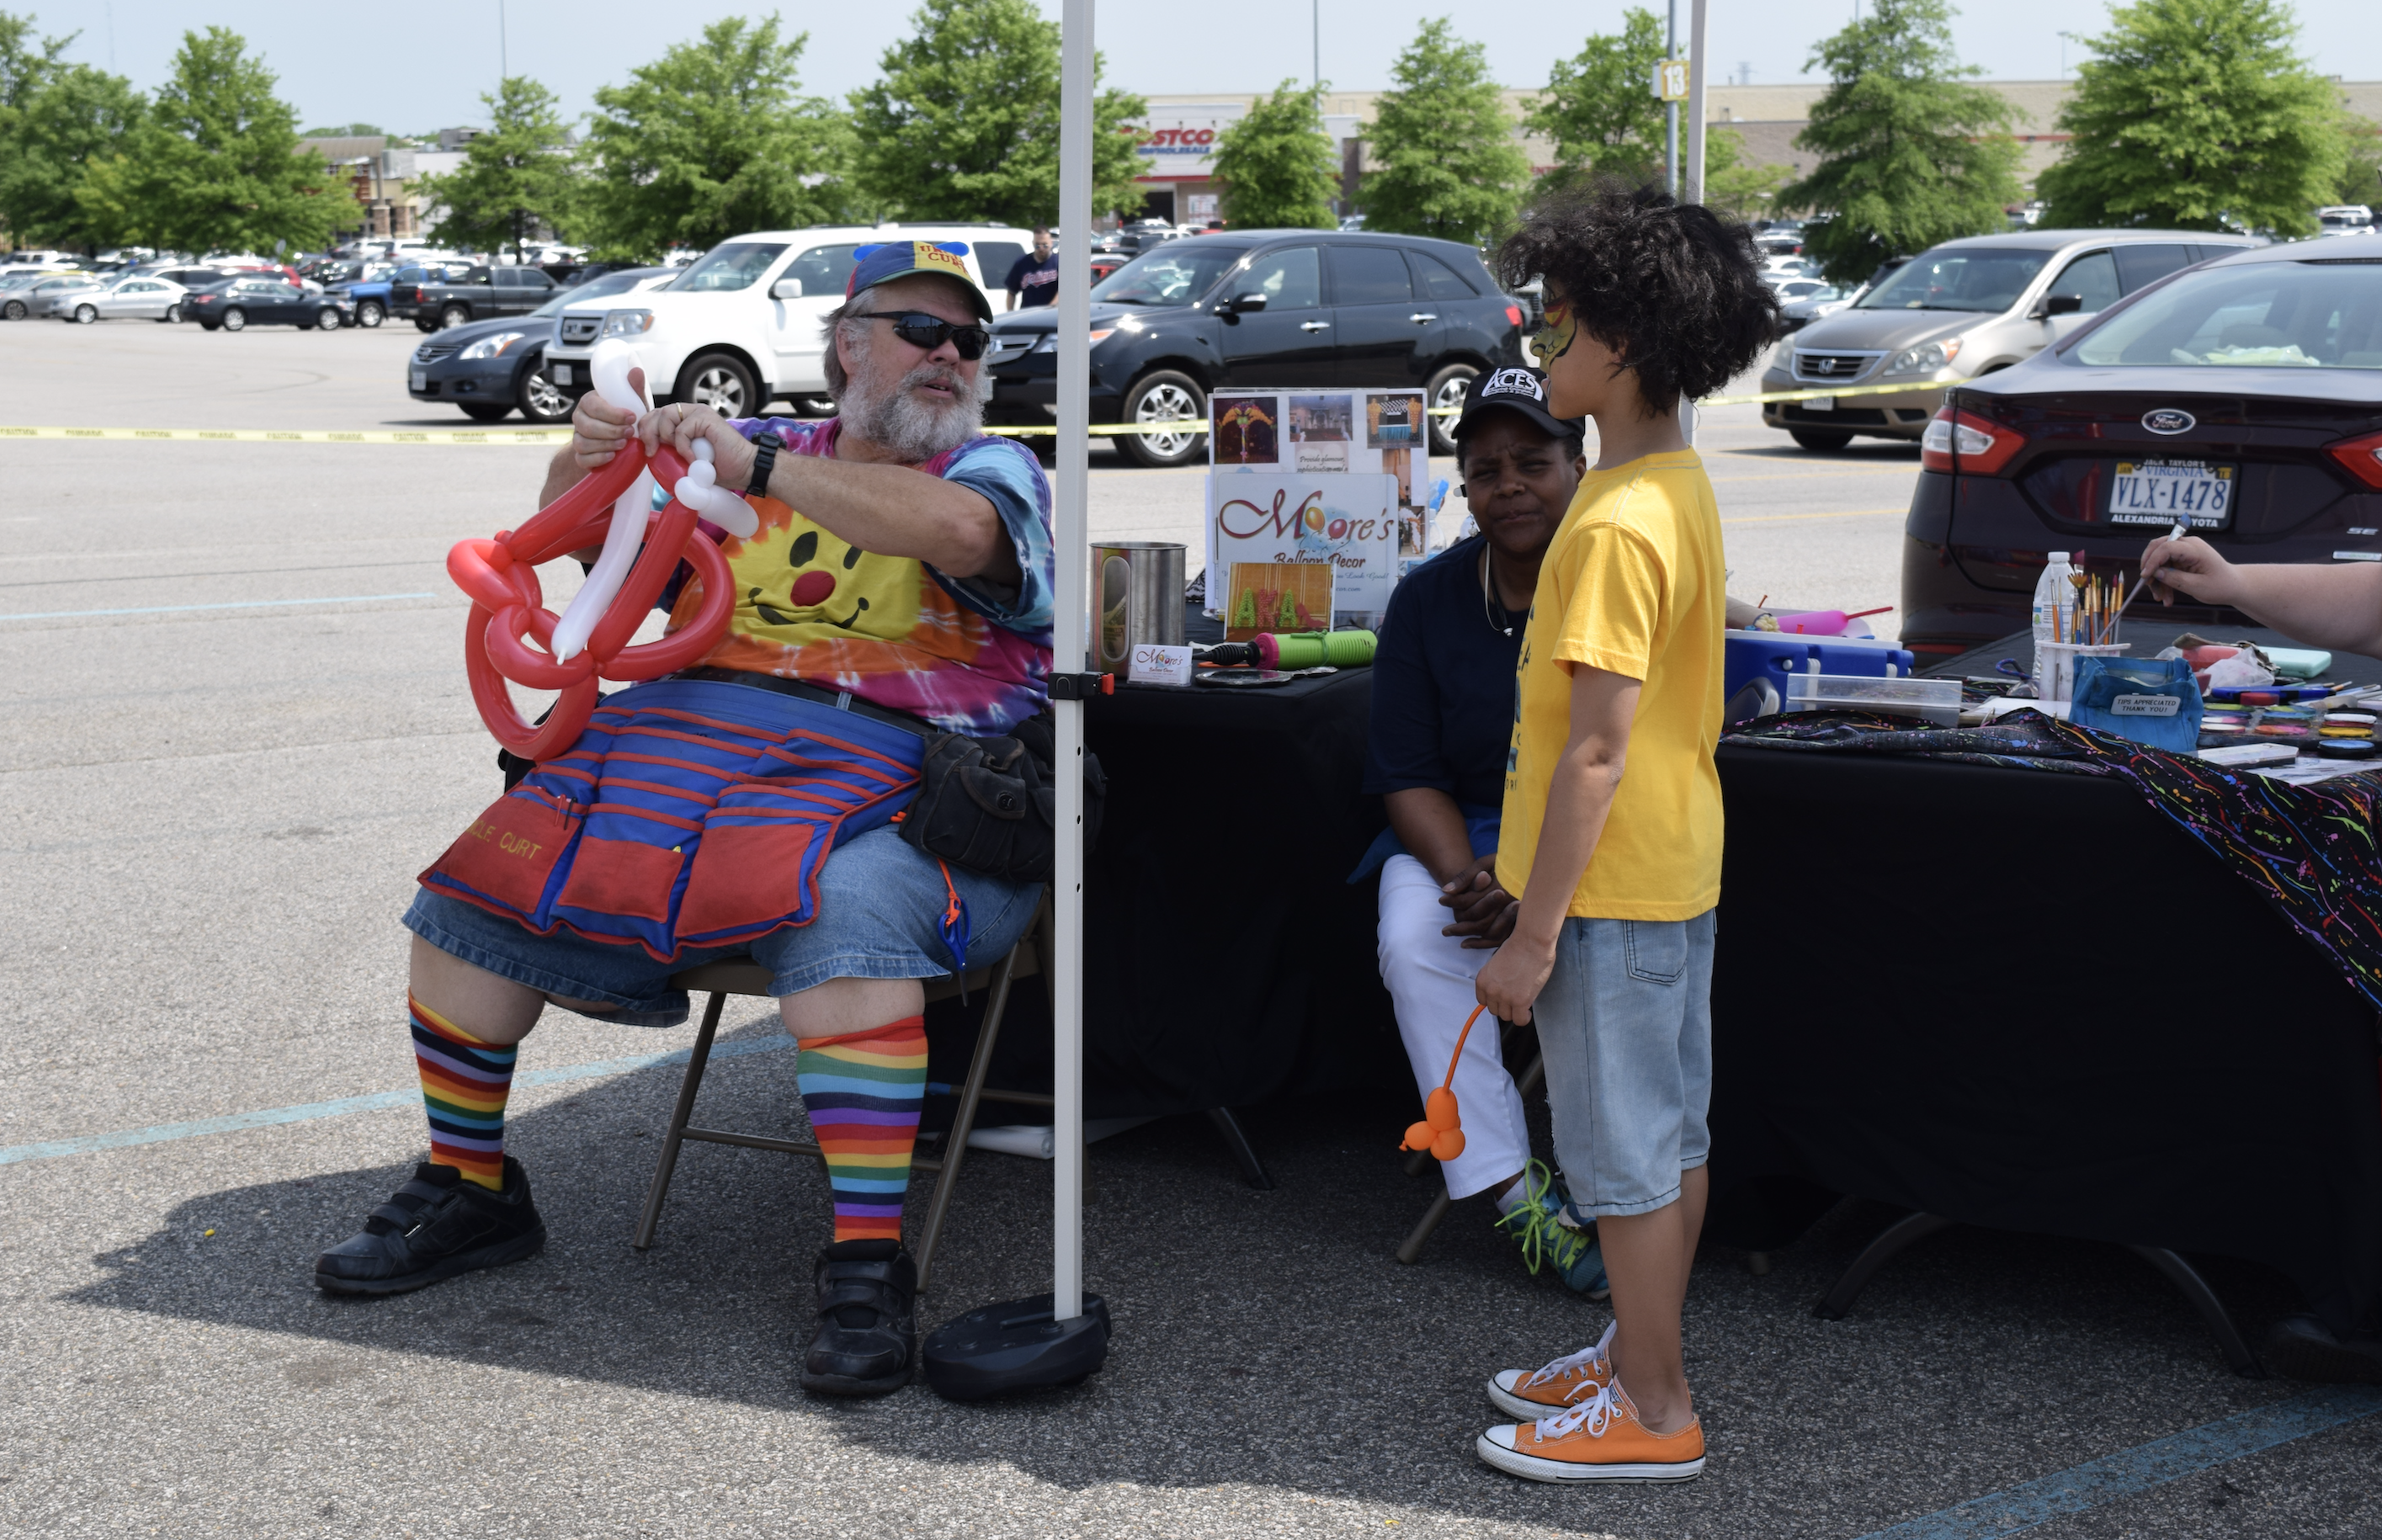 """Kids can enjoy face painting and balloon artists will entertain them too at """"The Market at Potomac Mills"""" in Woodbridge, Virginia- (held from late April to late October 2017)"""